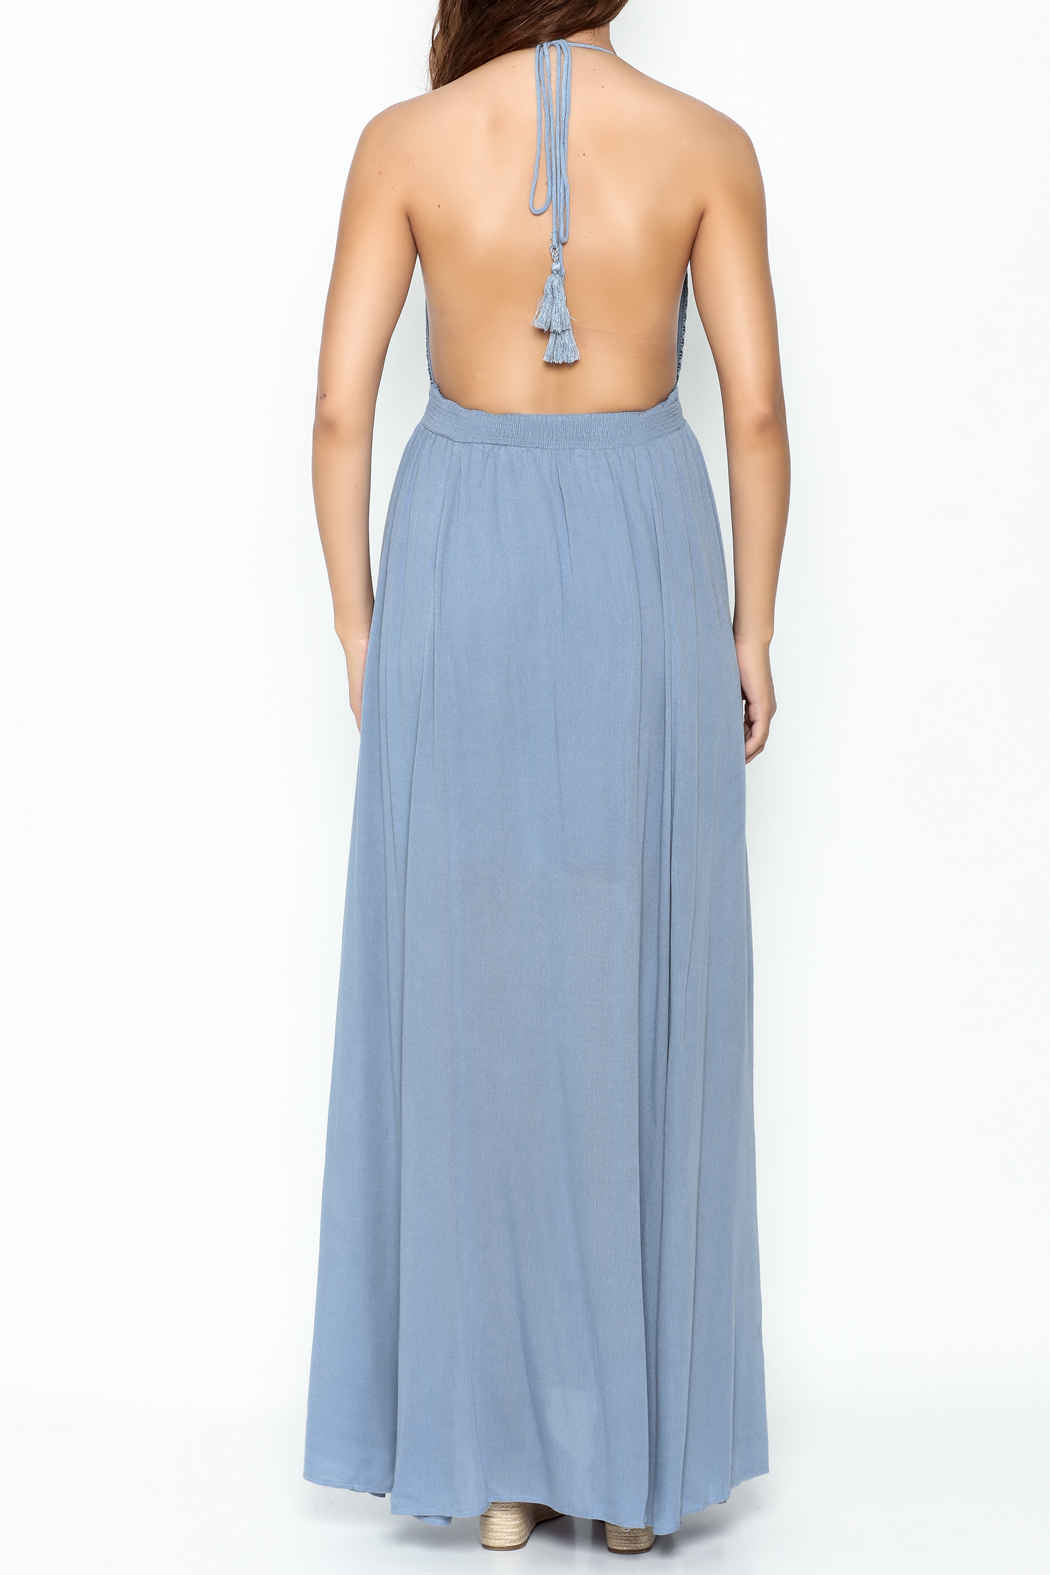 Hommage Skylar Maxi Dress - Back Cropped Image